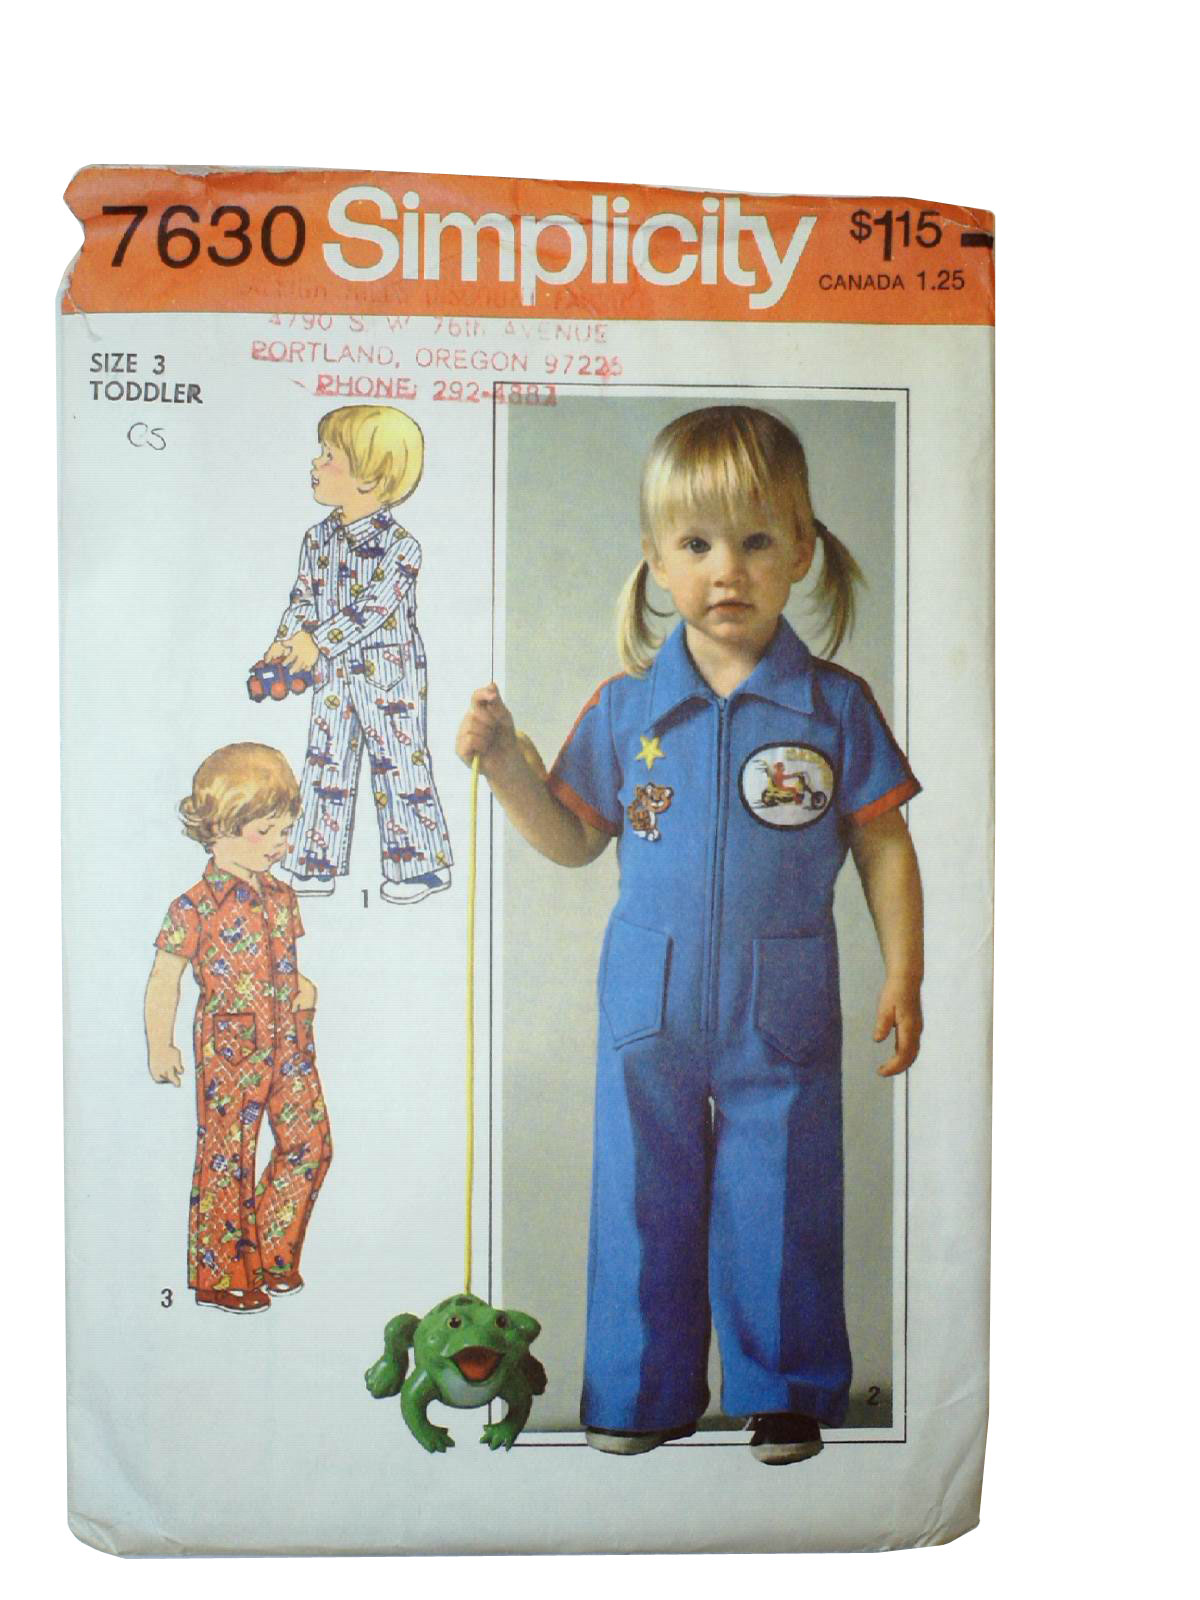 Vintage 70s sewing pattern 70s simplicity 7630 toddler jumpsuit vintage 70s sewing pattern 70s simplicity 7630 toddler jumpsuit pattern with options for sleeve lengths jeuxipadfo Choice Image